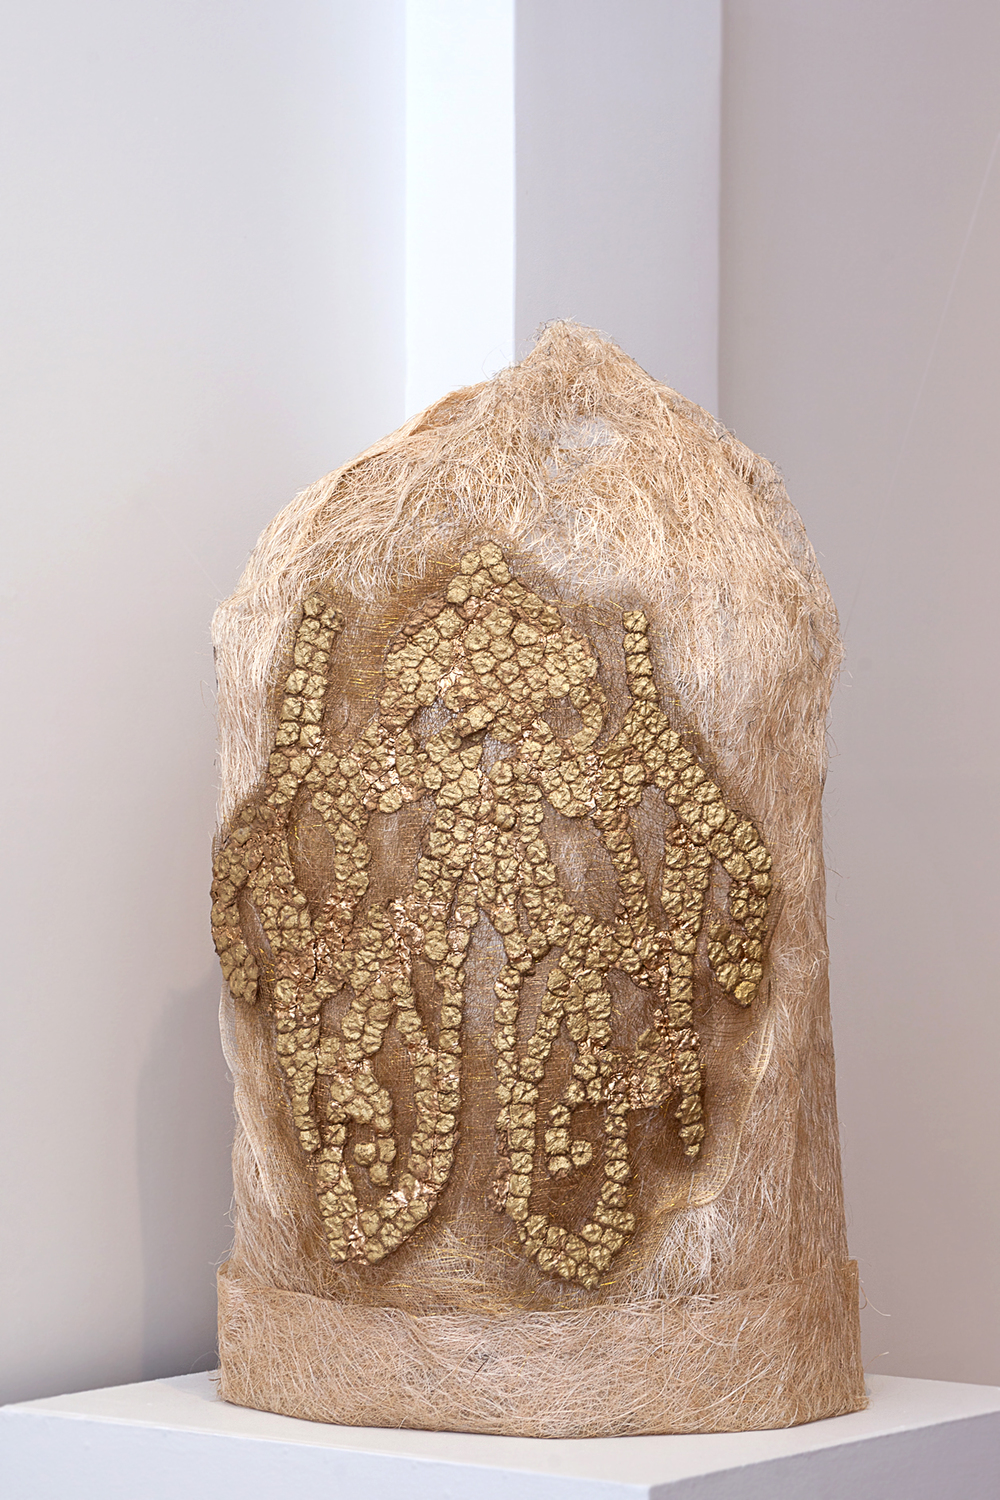 "After Maria Clara's Piña Fiber Sleeve , 2014. Abaca fiber & spray paint on abaca pulp cast, 48"" x 26"" x 18"" (Photo: Mido Lee)"